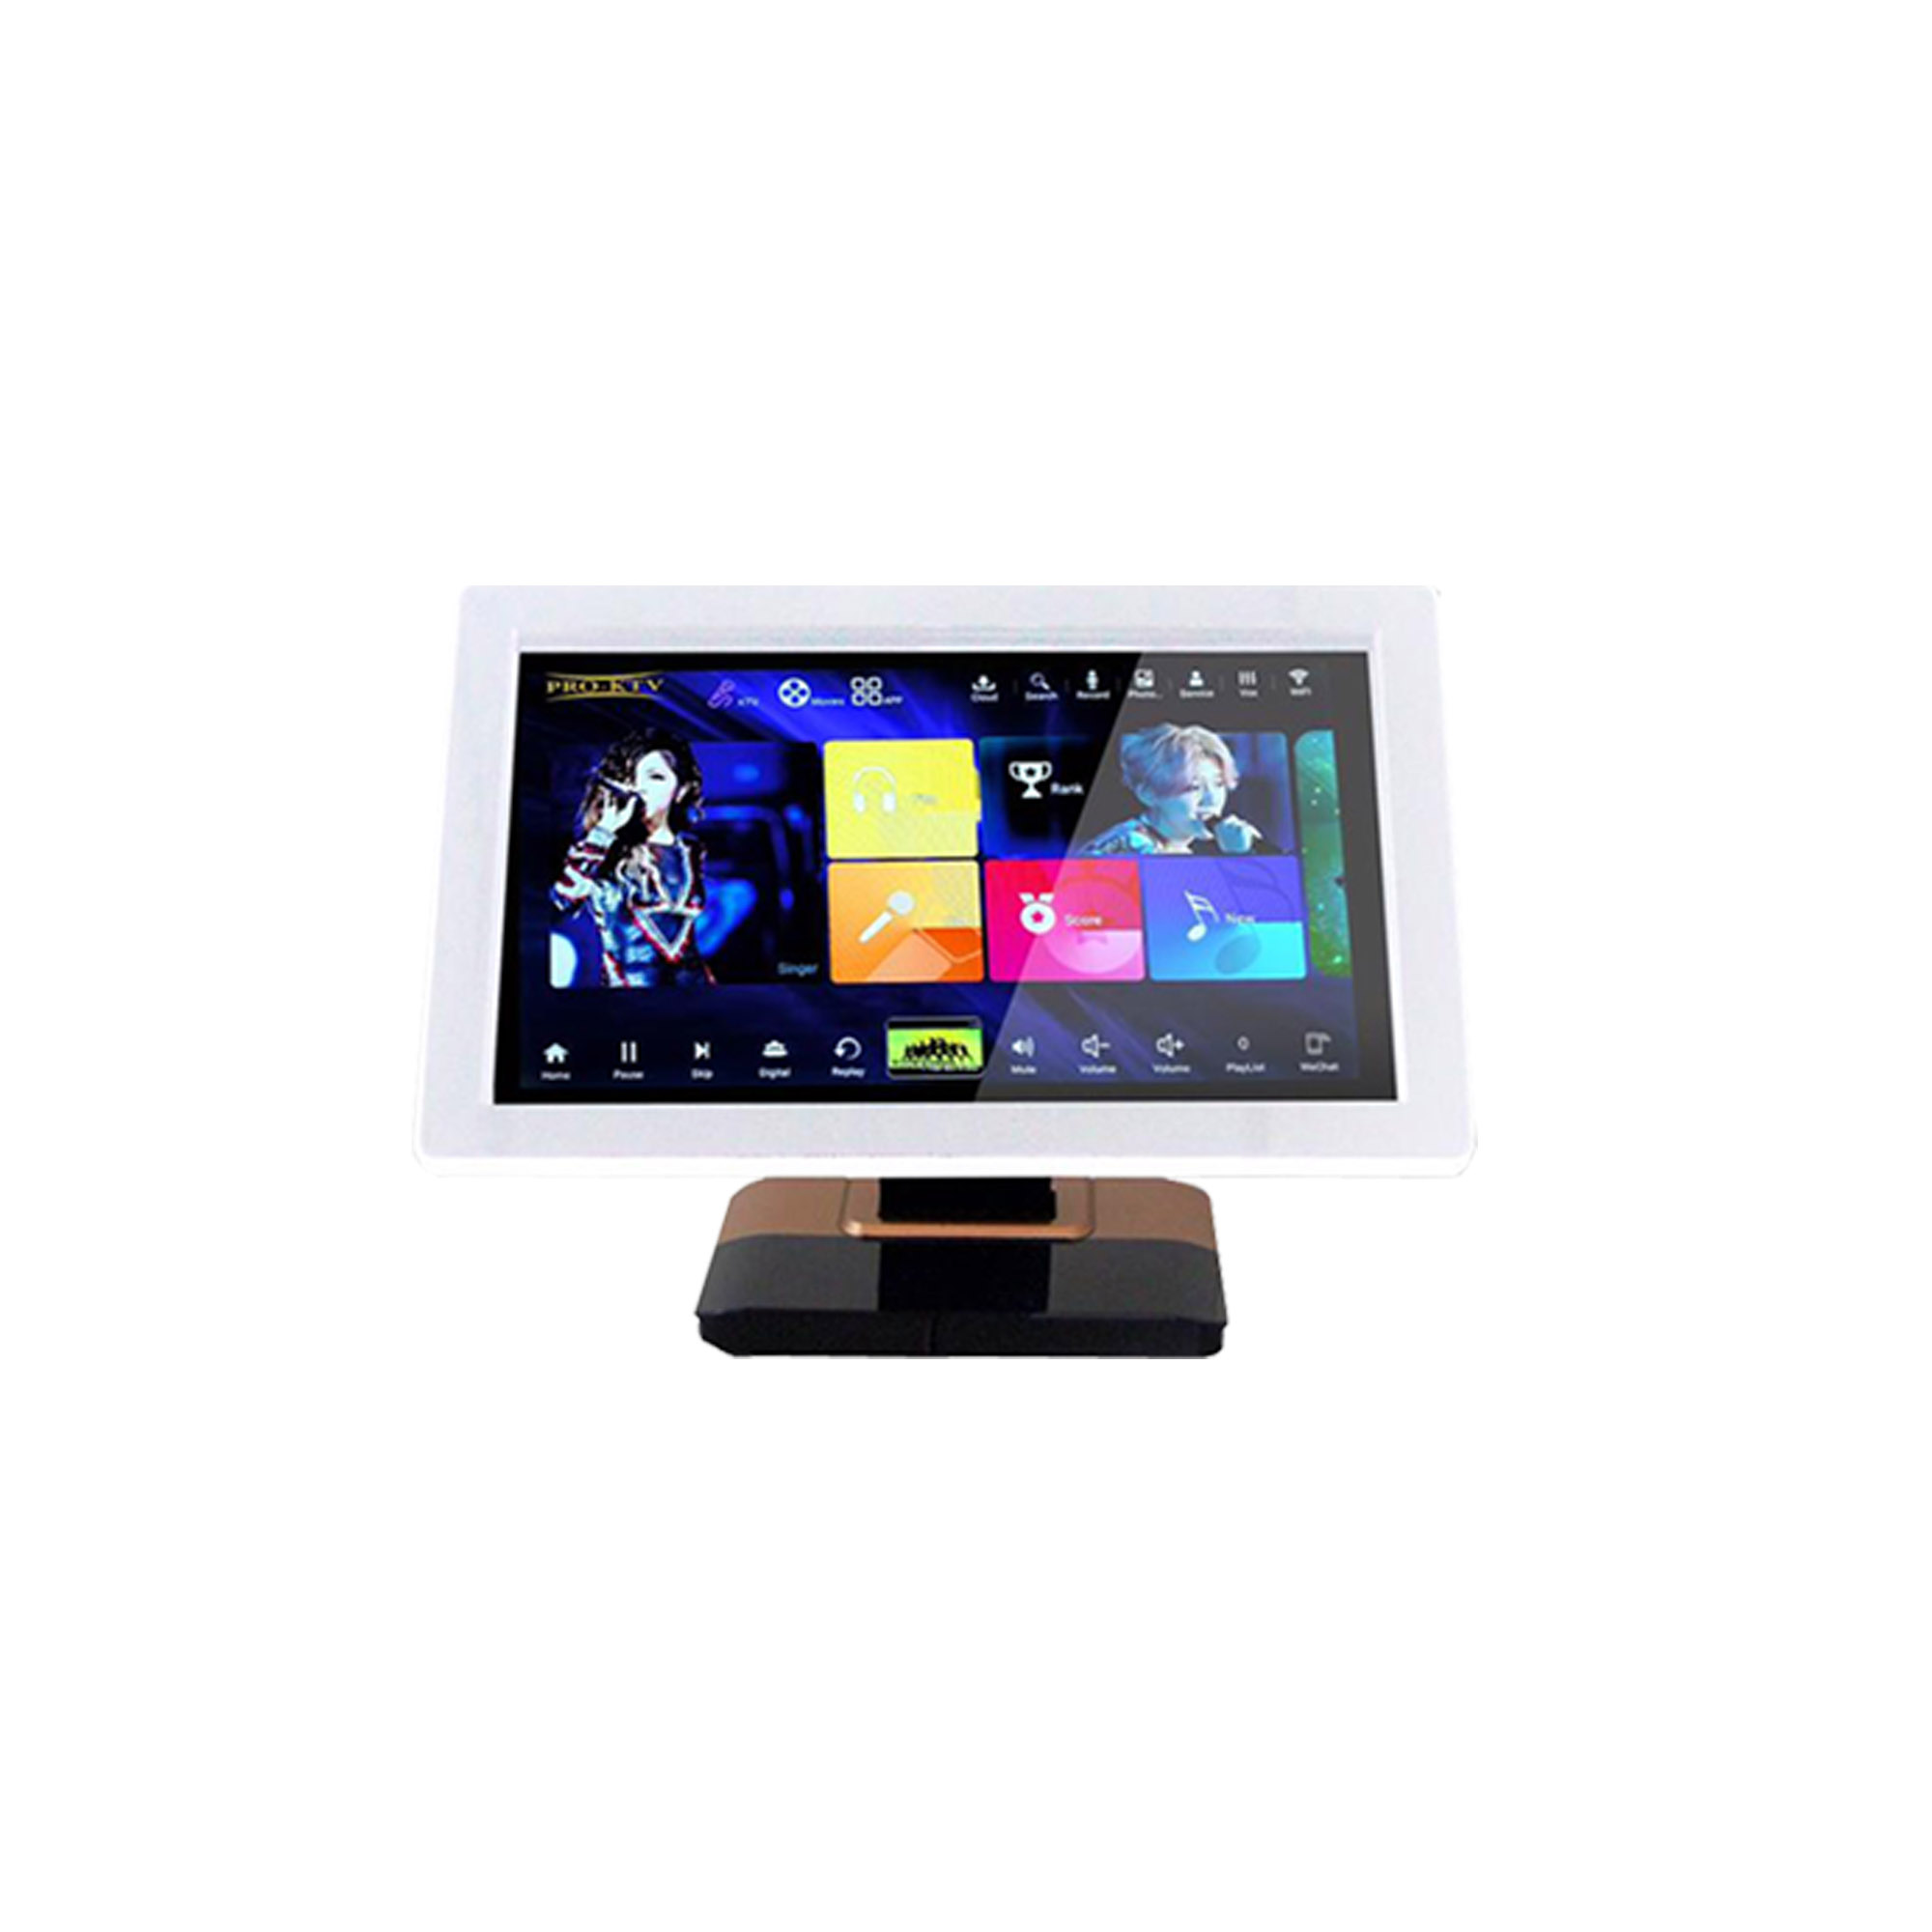 """PRO KTV 21.5"""" All in One Karaoke On Demand Player with Desktop Stand (4TB)"""